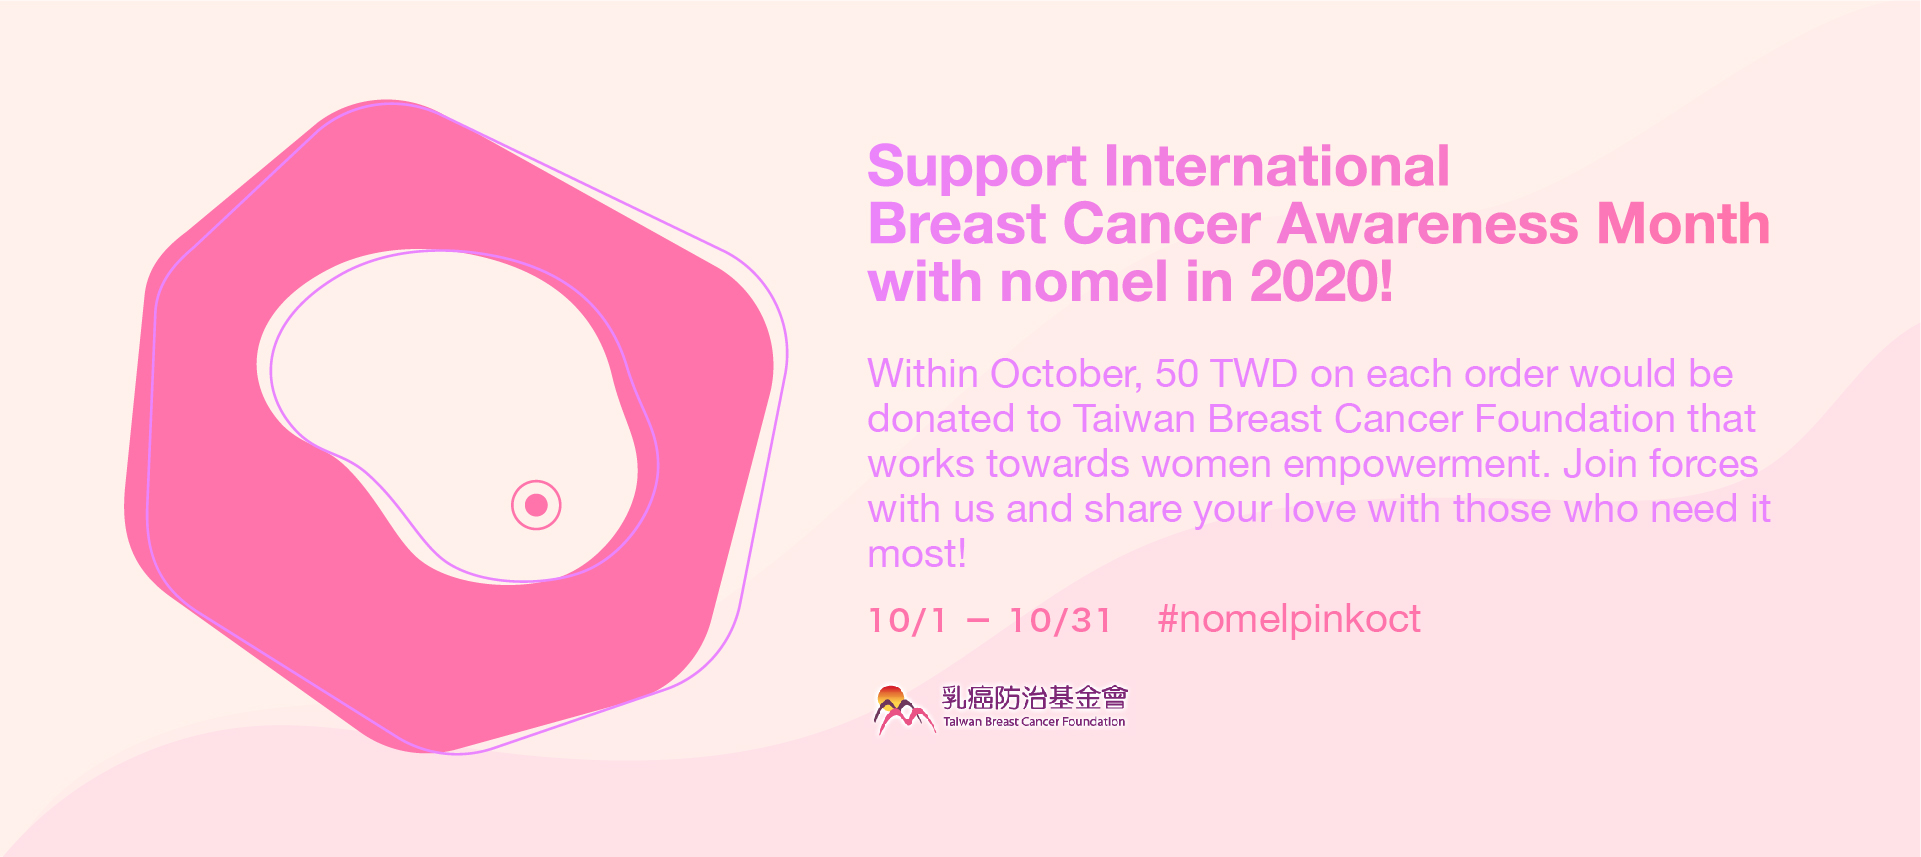 Support International Breast Cancer Awareness Month with nomel in 2020!